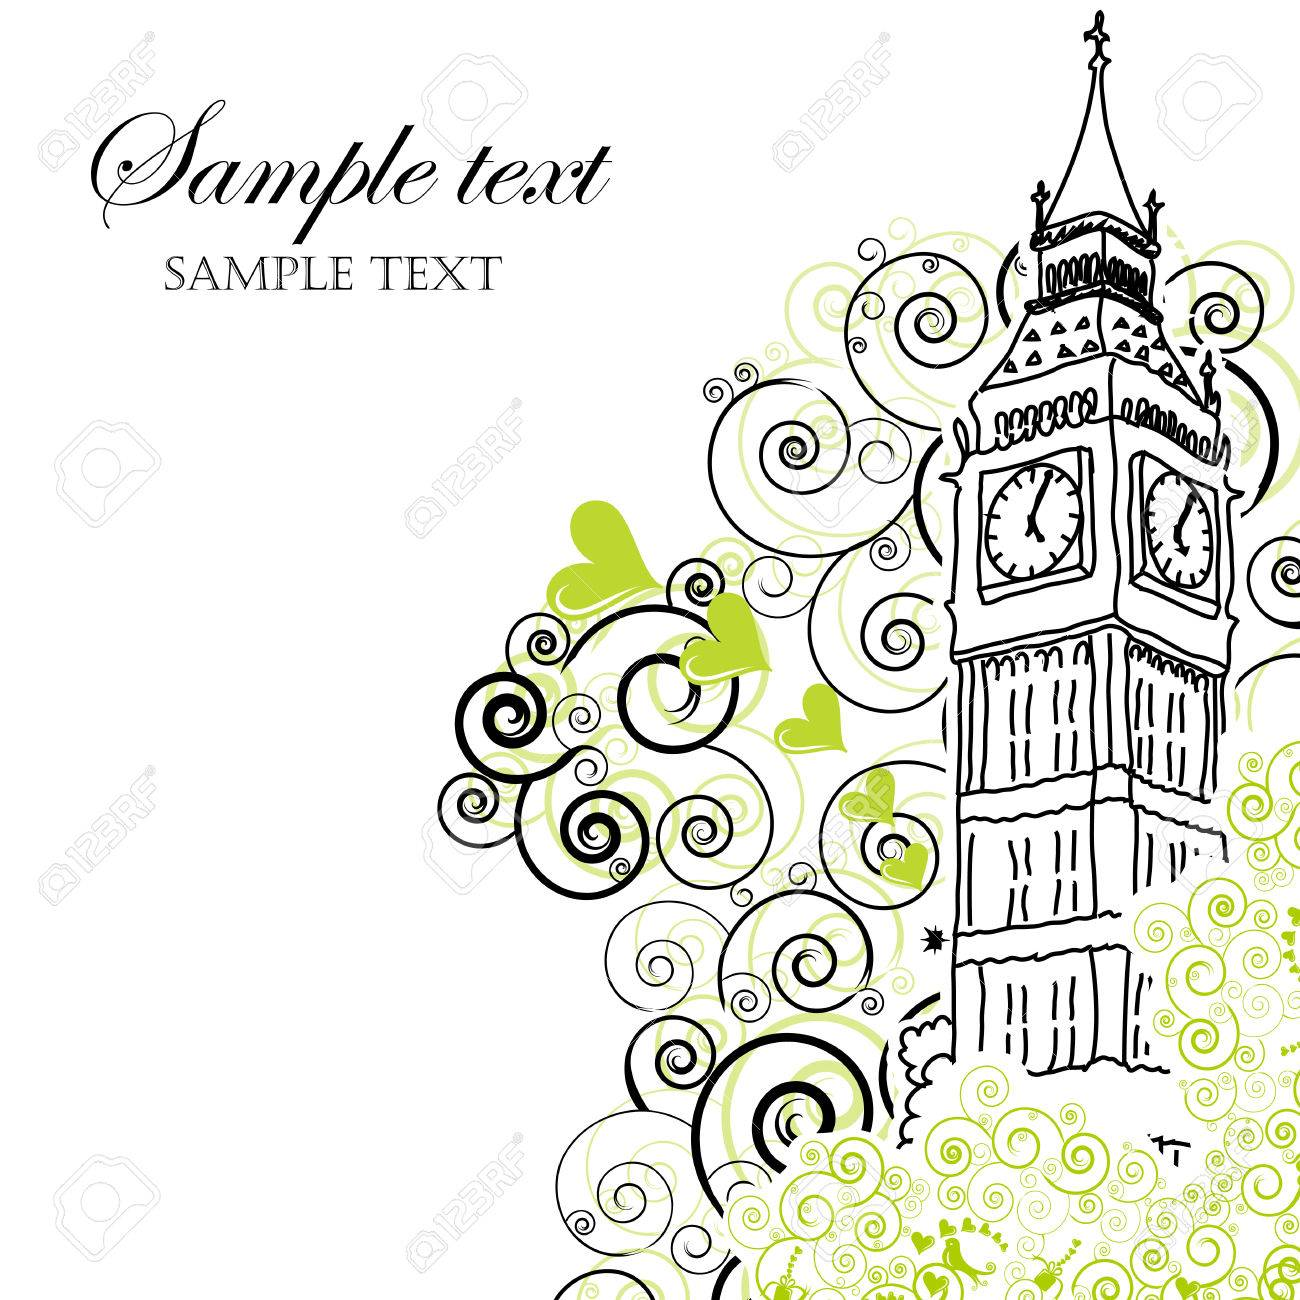 Big Ben Poster, Cover or Greeting card Stock Vector - 6226128